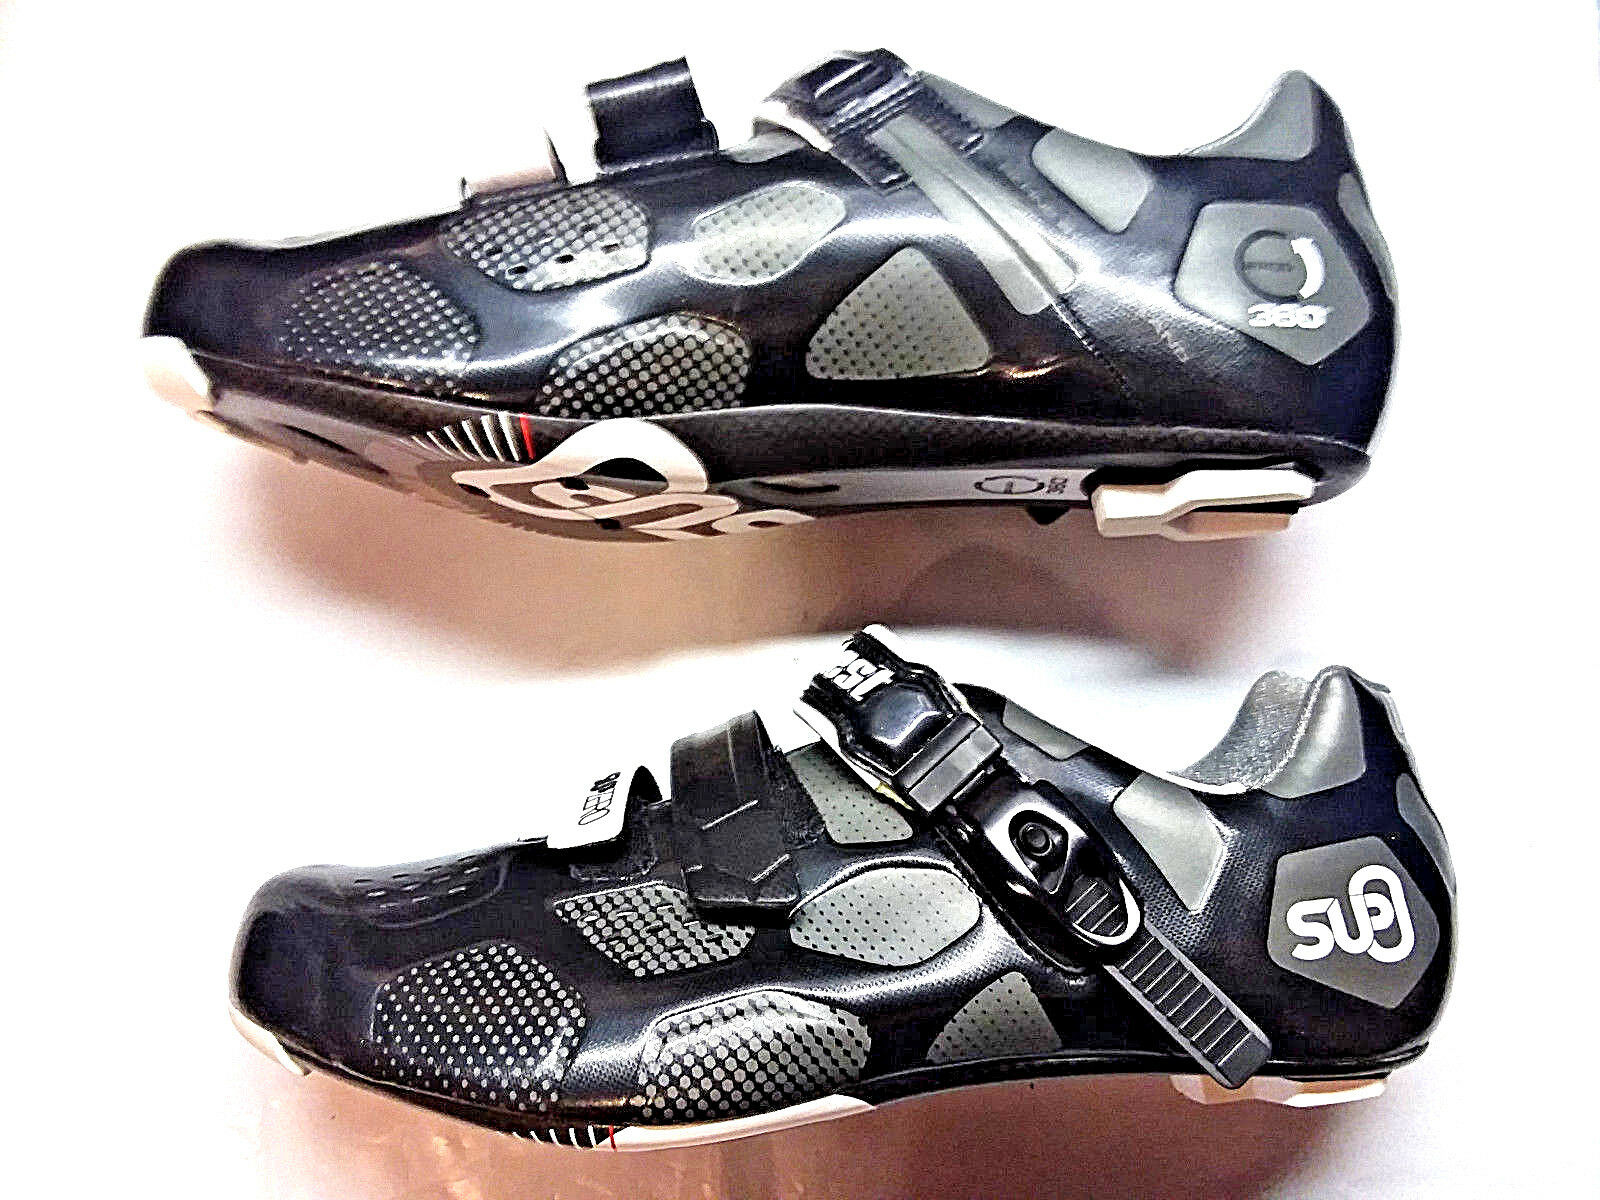 Suplest Supzero Streetracing Carbon Cycling shoes Size 45 Super  Light Weight NIB  high-quality merchandise and convenient, honest service